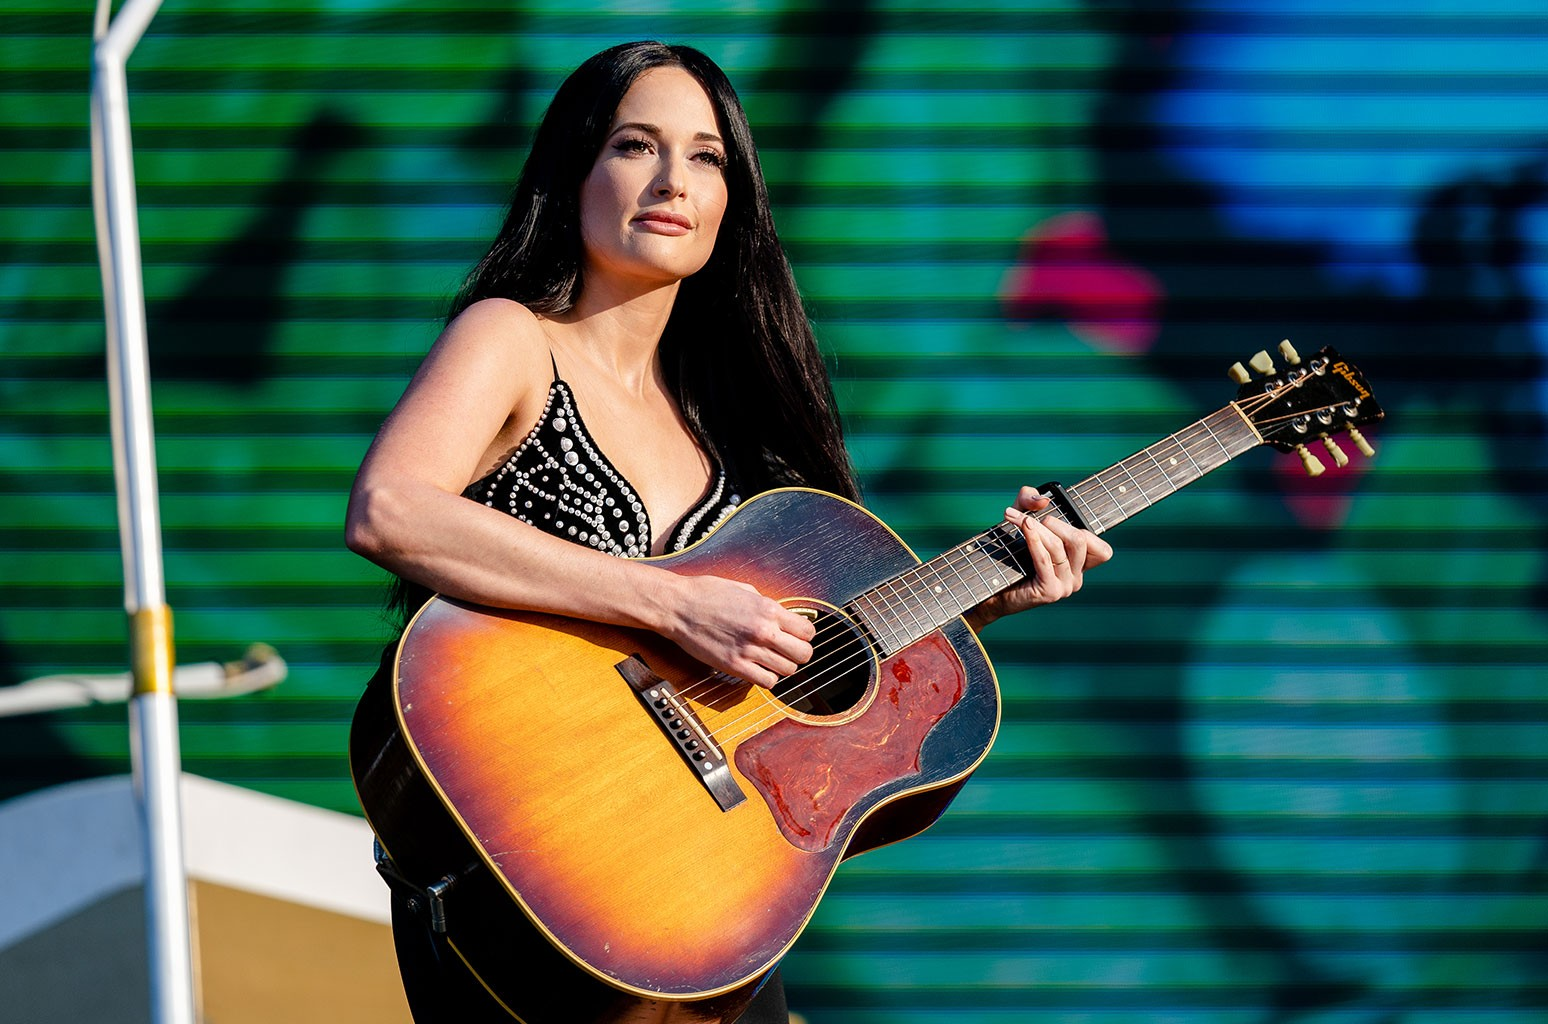 Kacey Musgraves Leaked photo 4